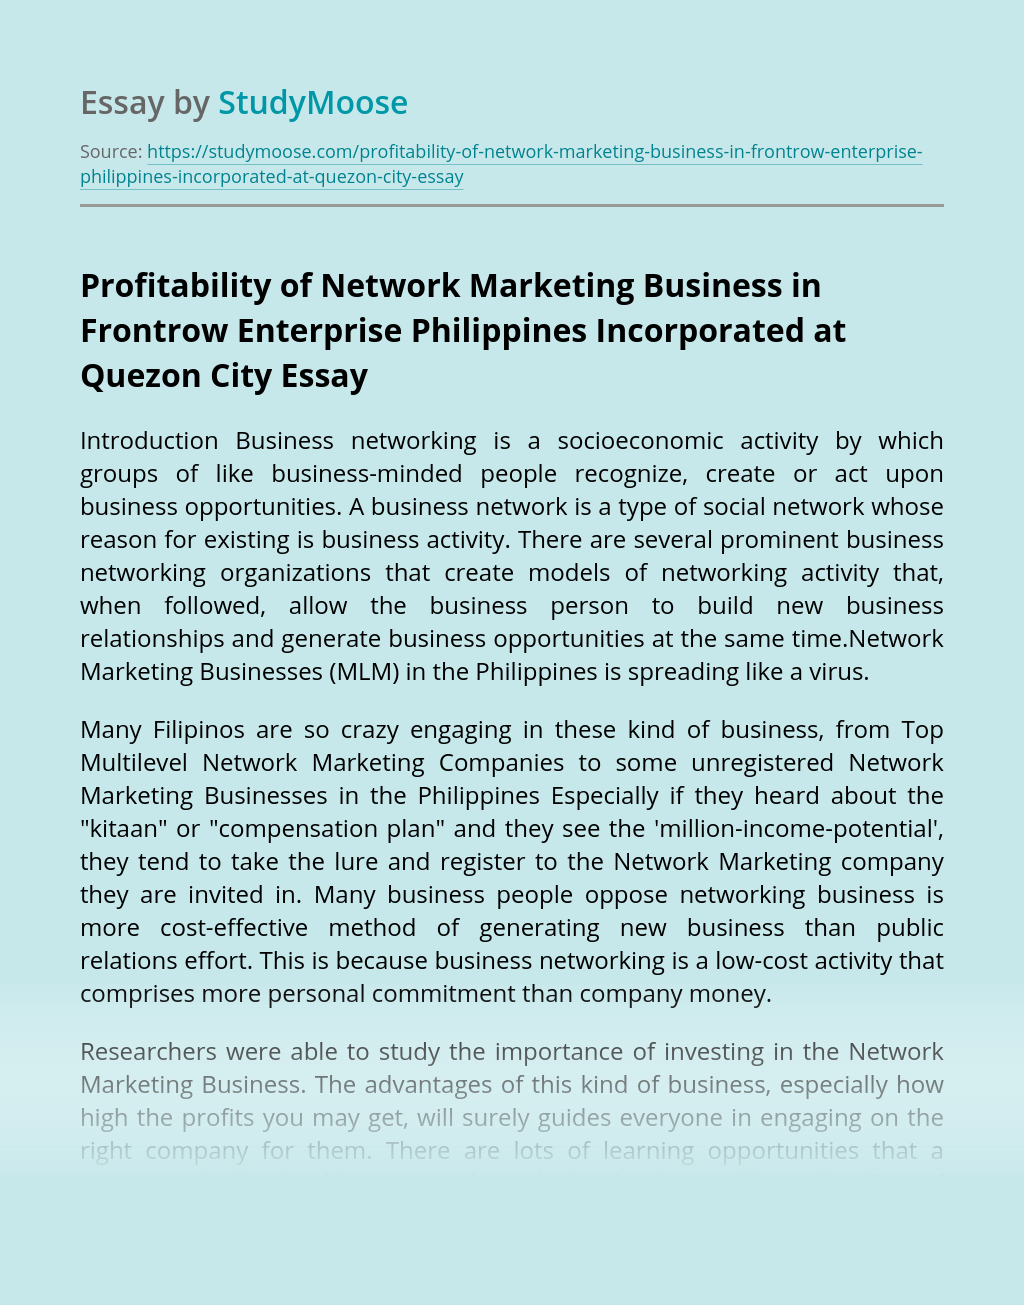 Profitability of Network Marketing Business in Frontrow Enterprise Philippines Incorporated at Quezon City